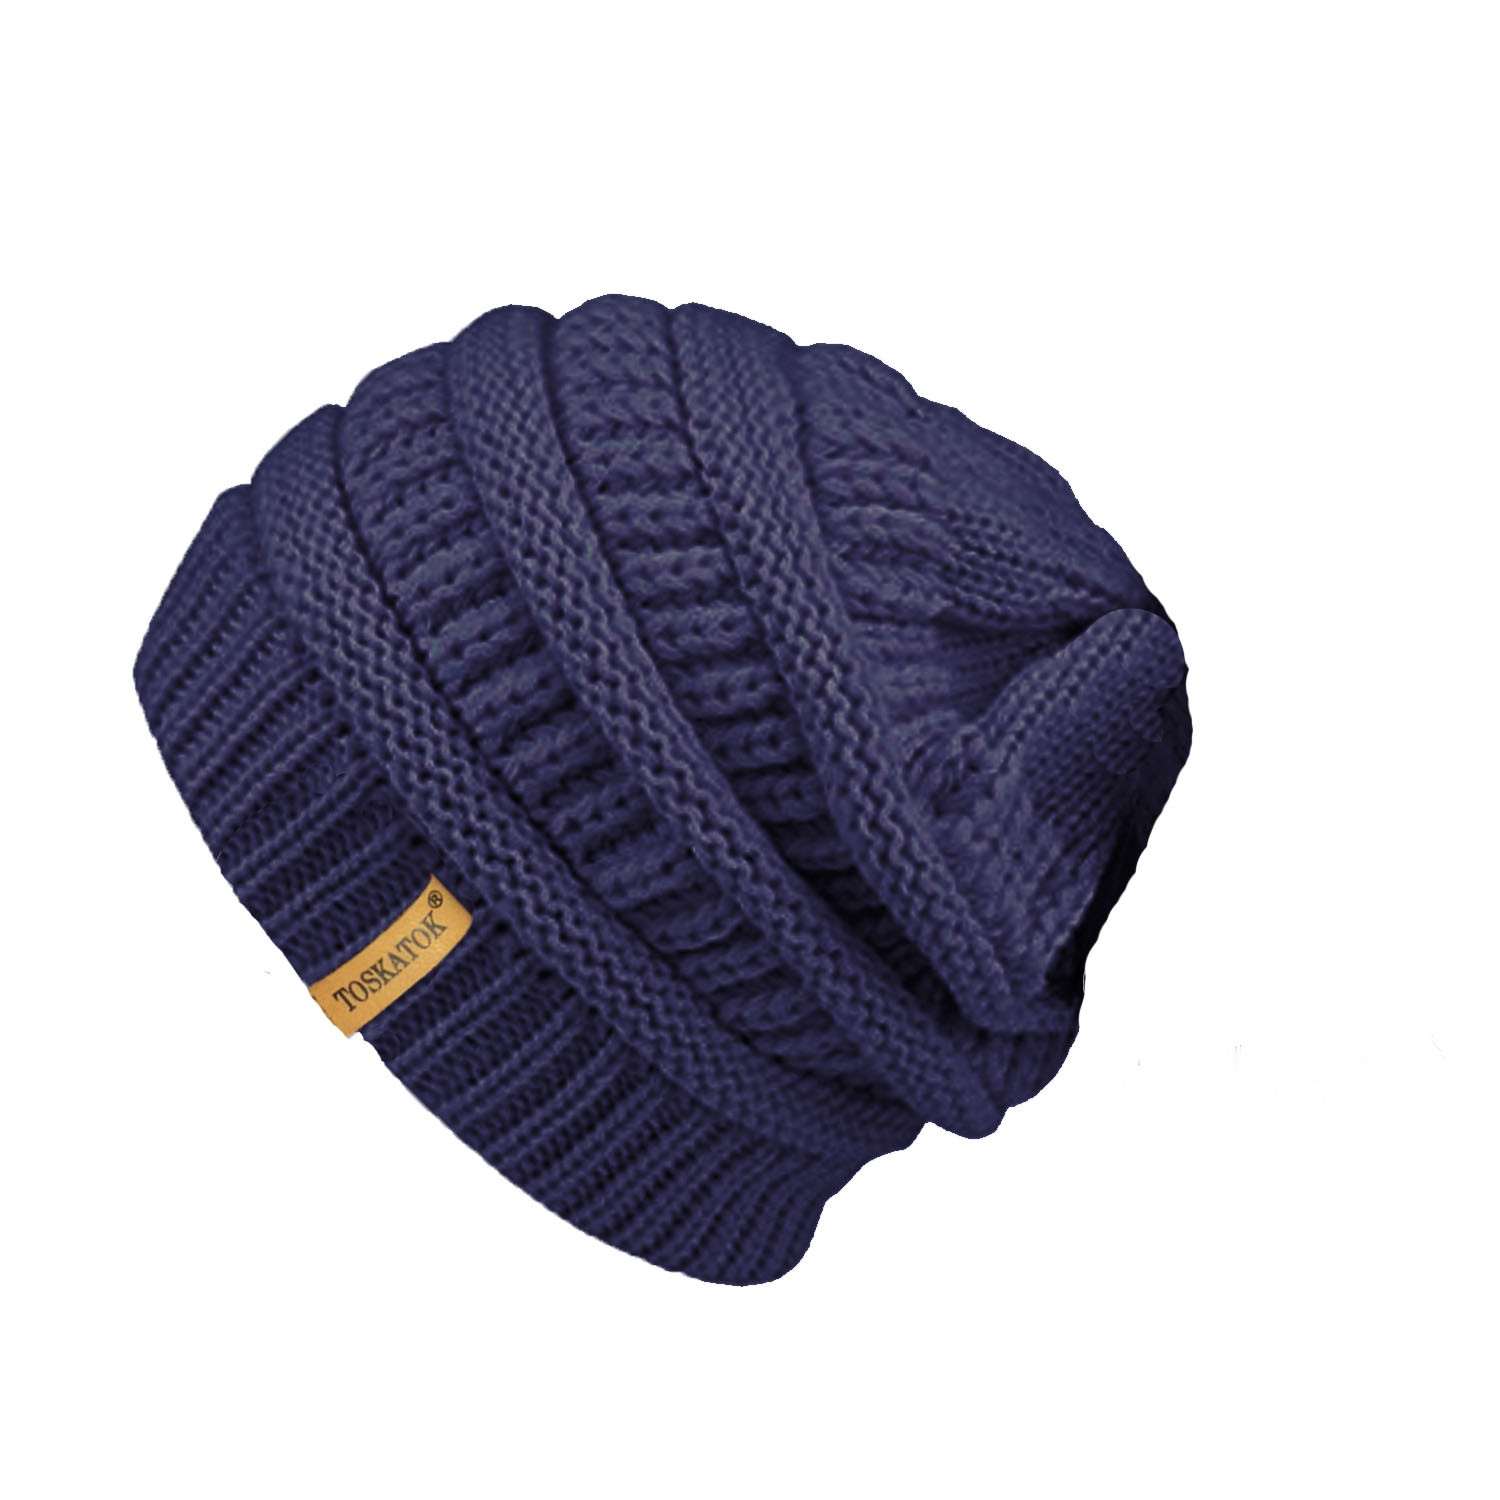 New Ladies Womens Winter Textured Knit Beanie Bobble Hat Winter Knit Hats Of Charming 40 Photos Winter Knit Hats